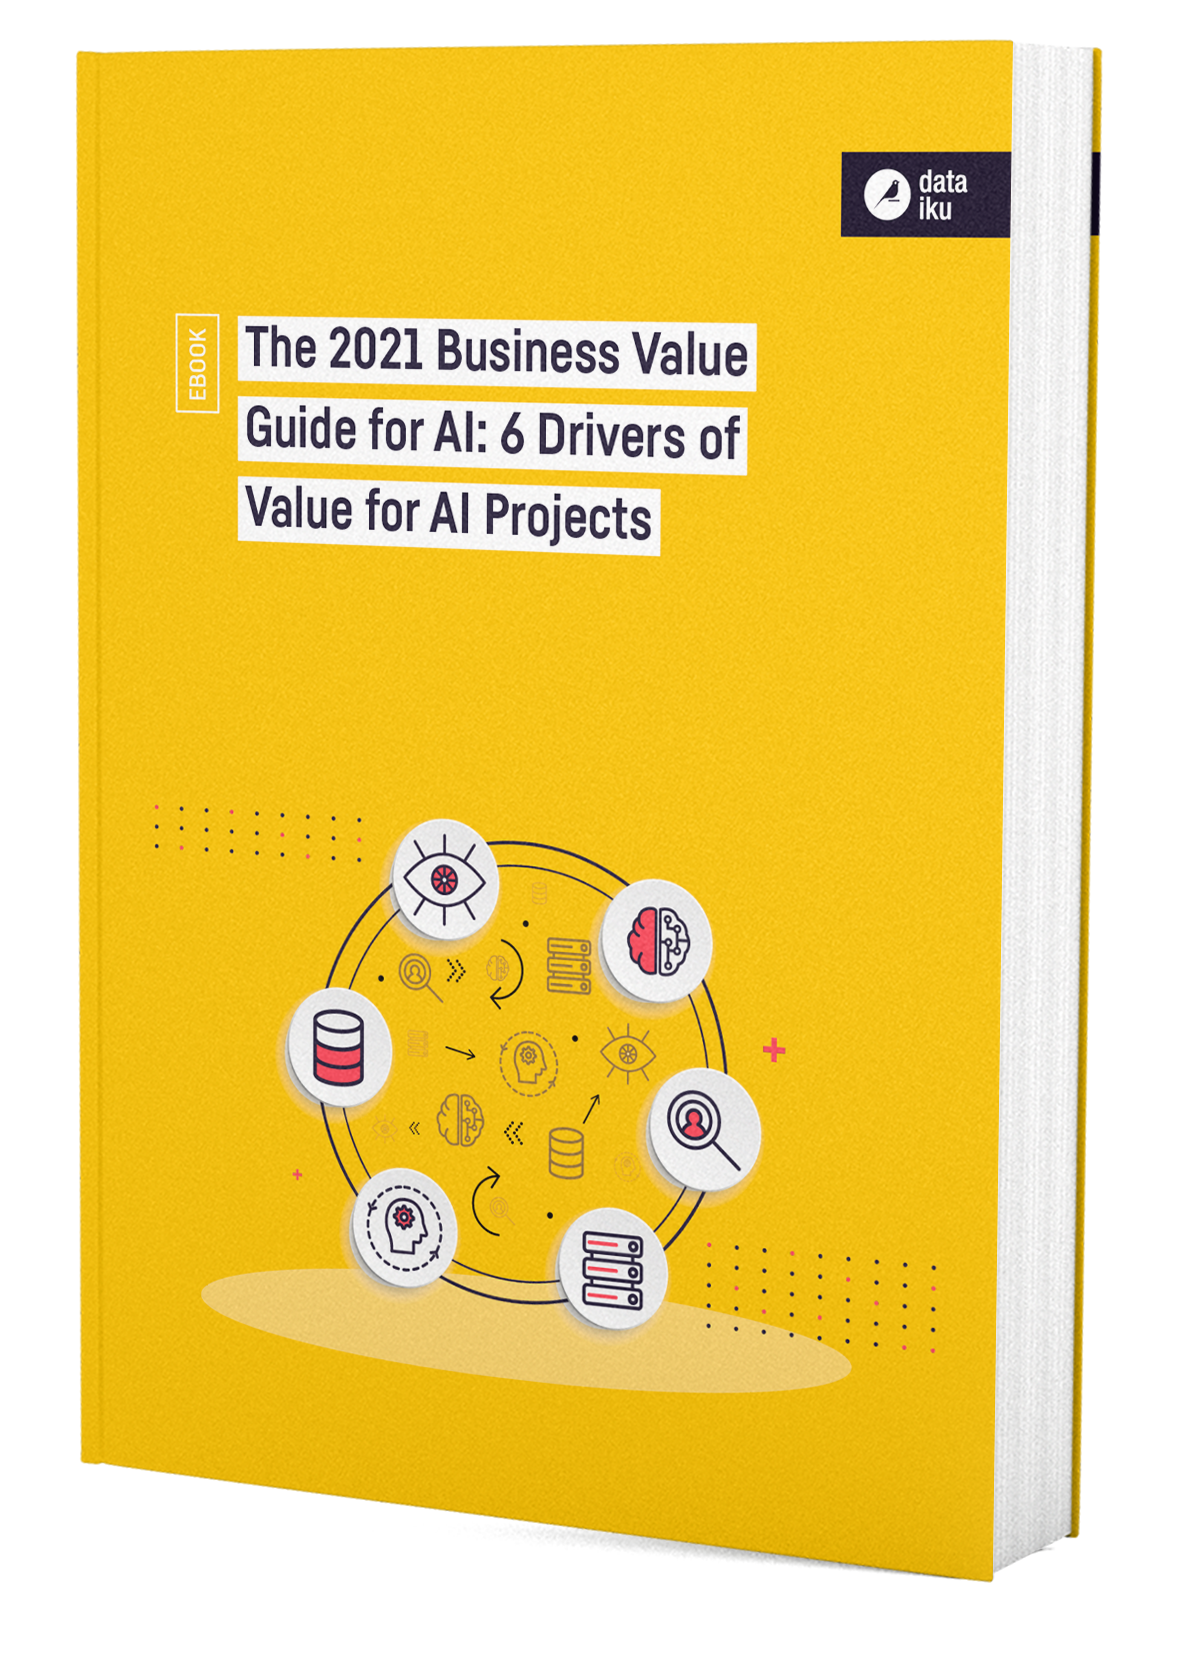 The 2021 Business Value Guide for AI